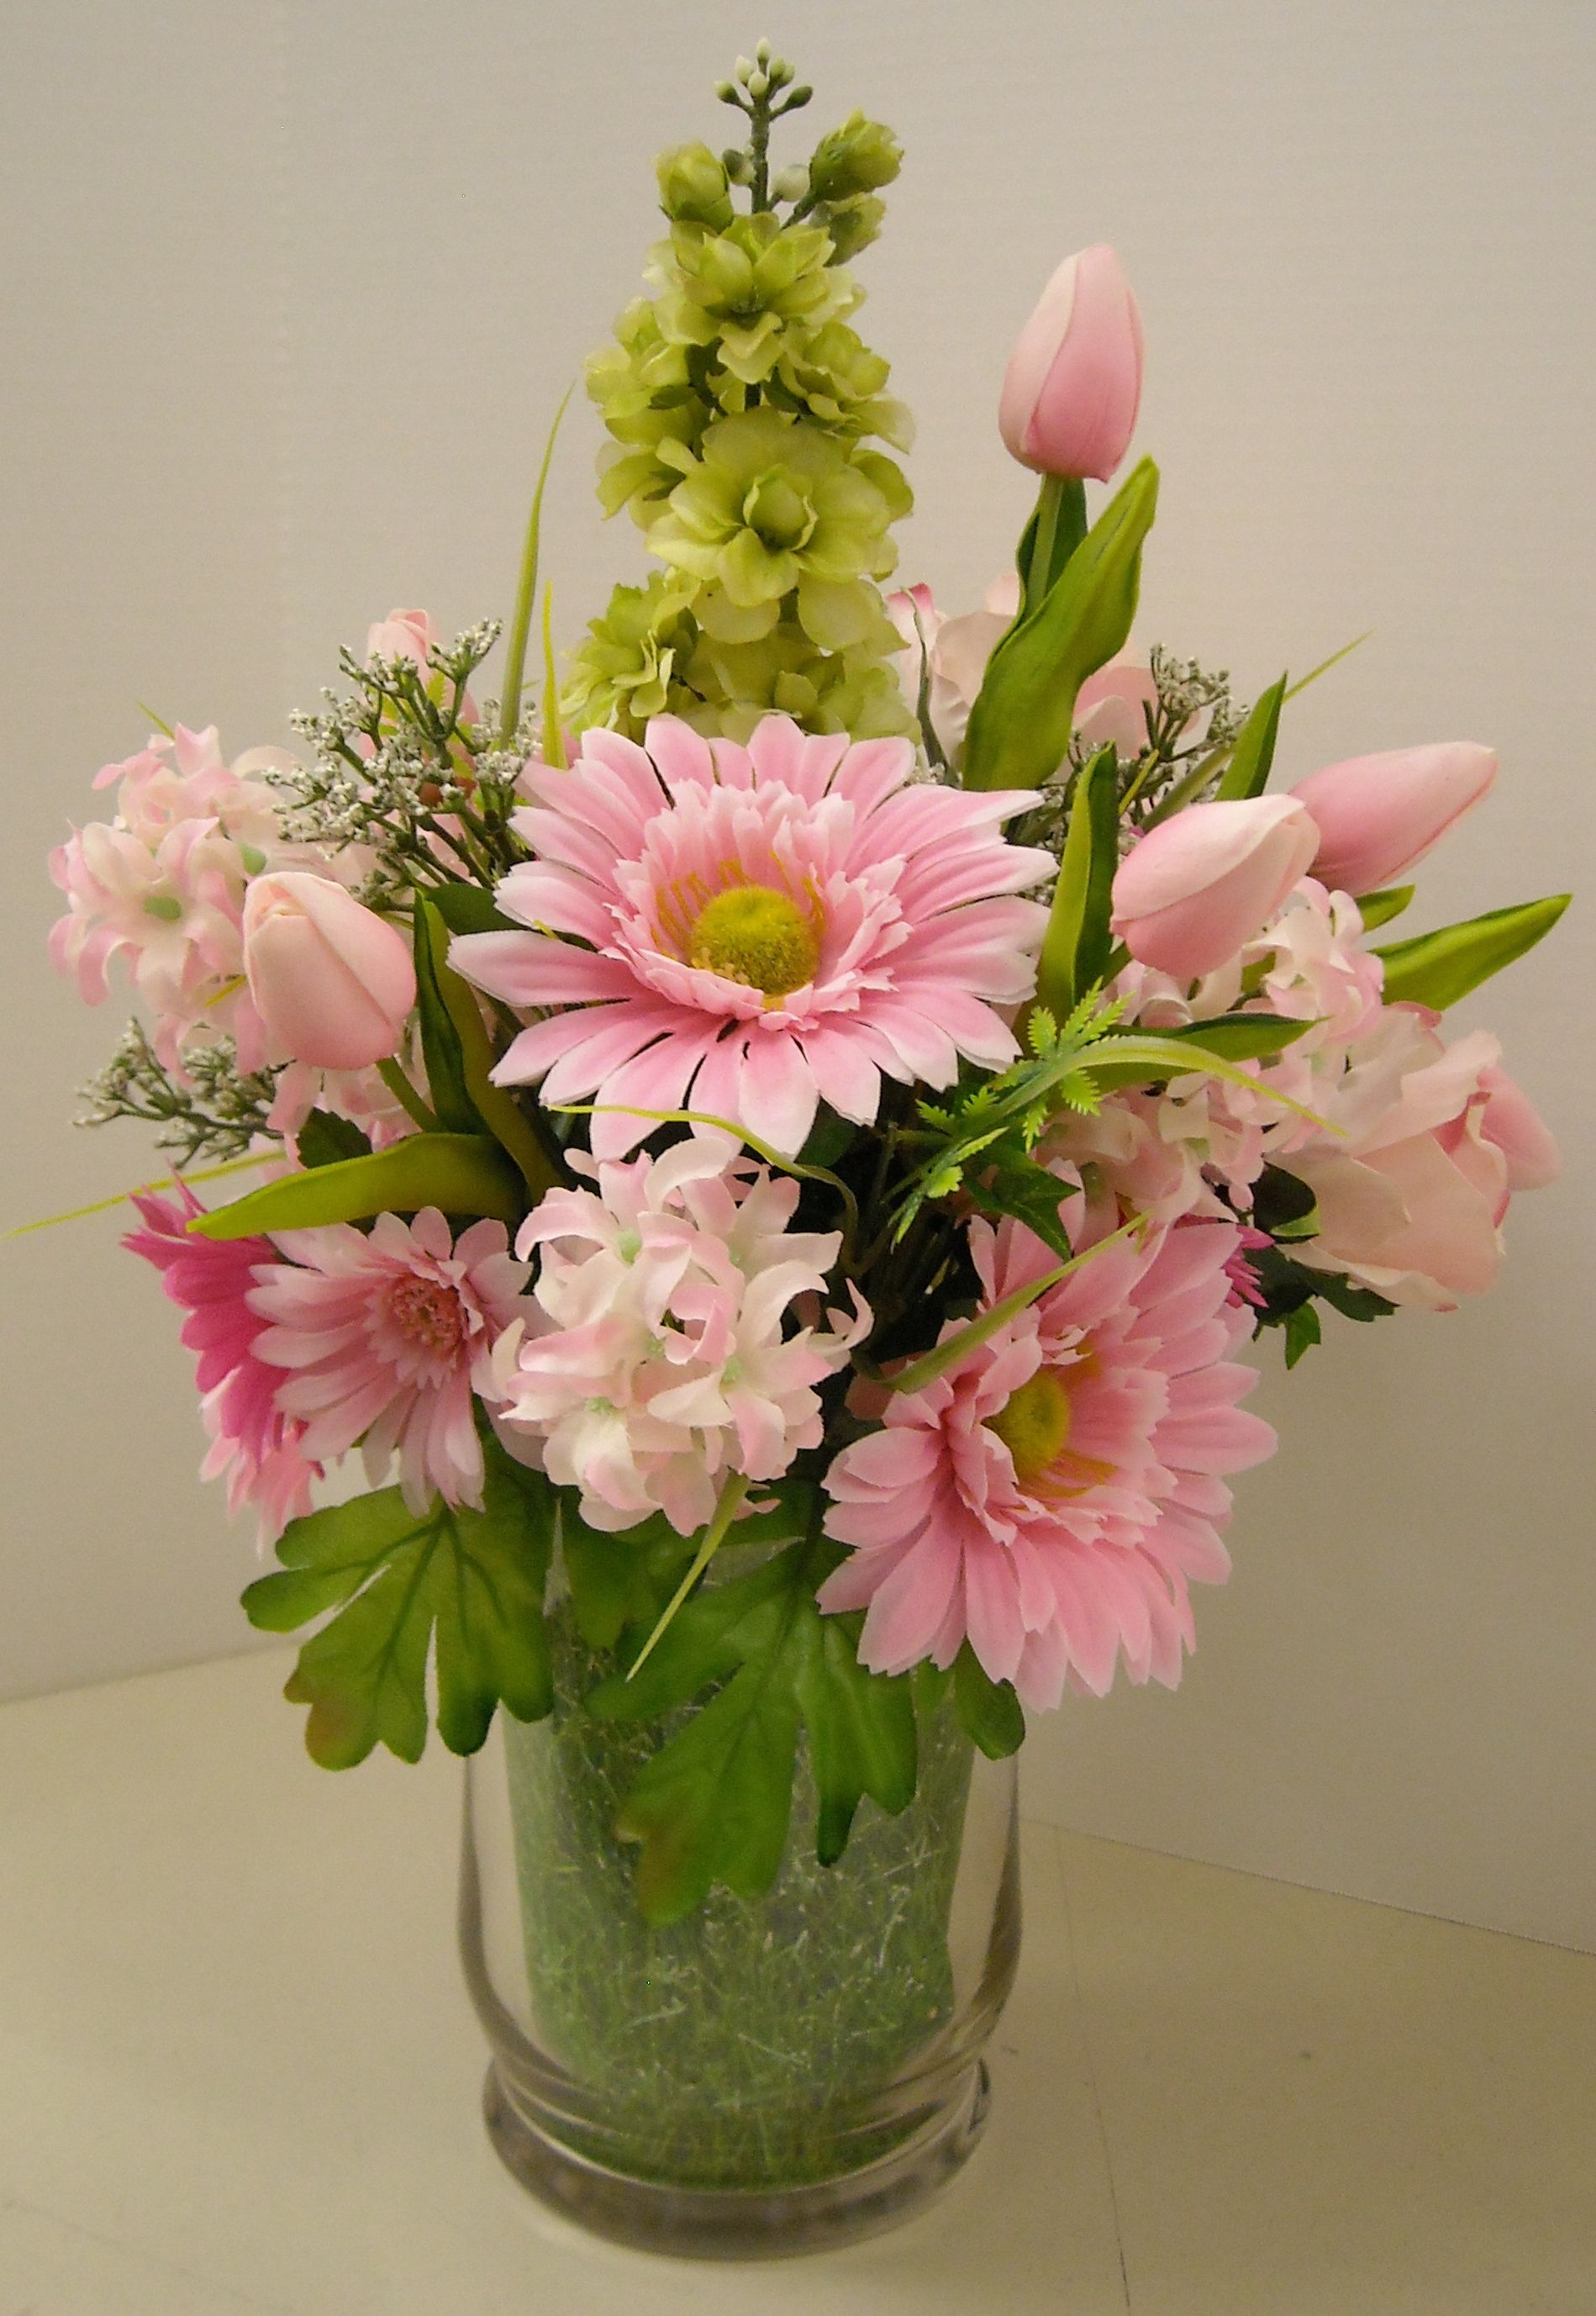 Mixed Pink And Green Flowers In Glass Vase Flowers Pinterest